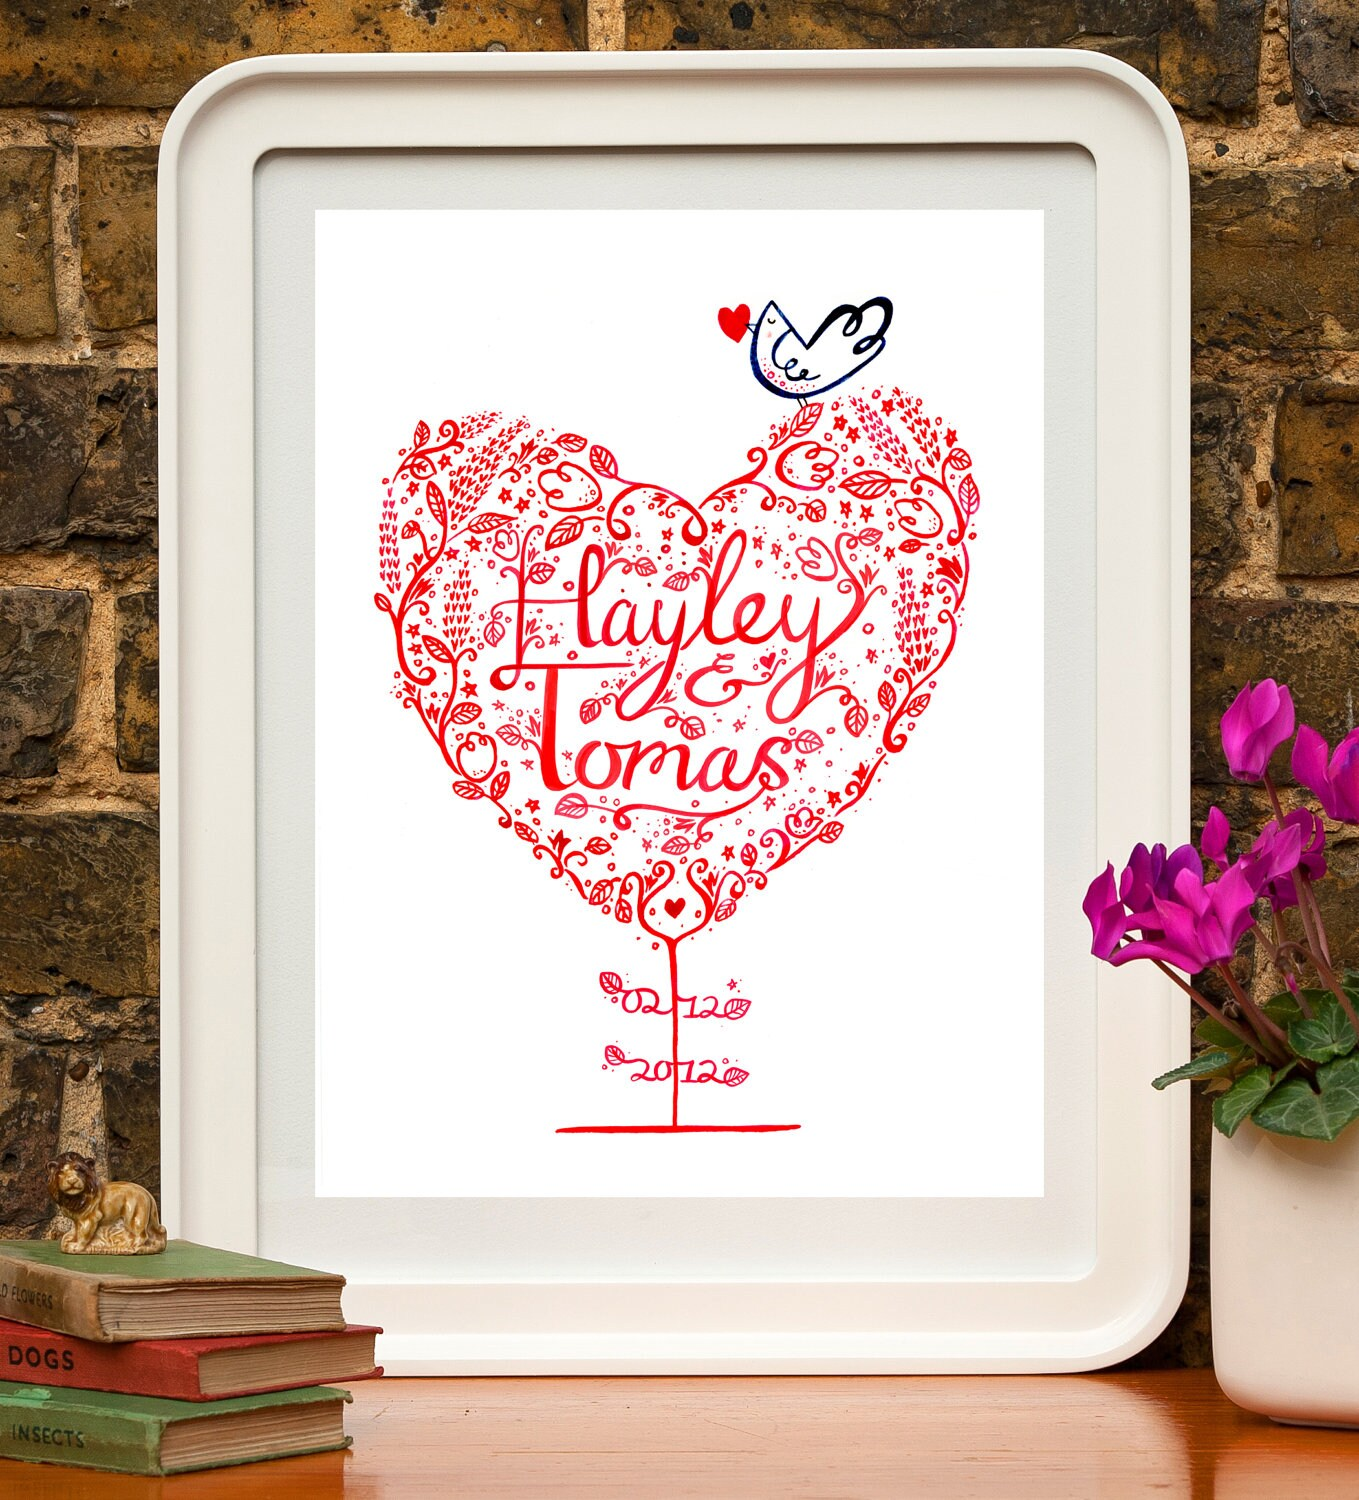 helen lang: personalized wedding banners  mom inc daily